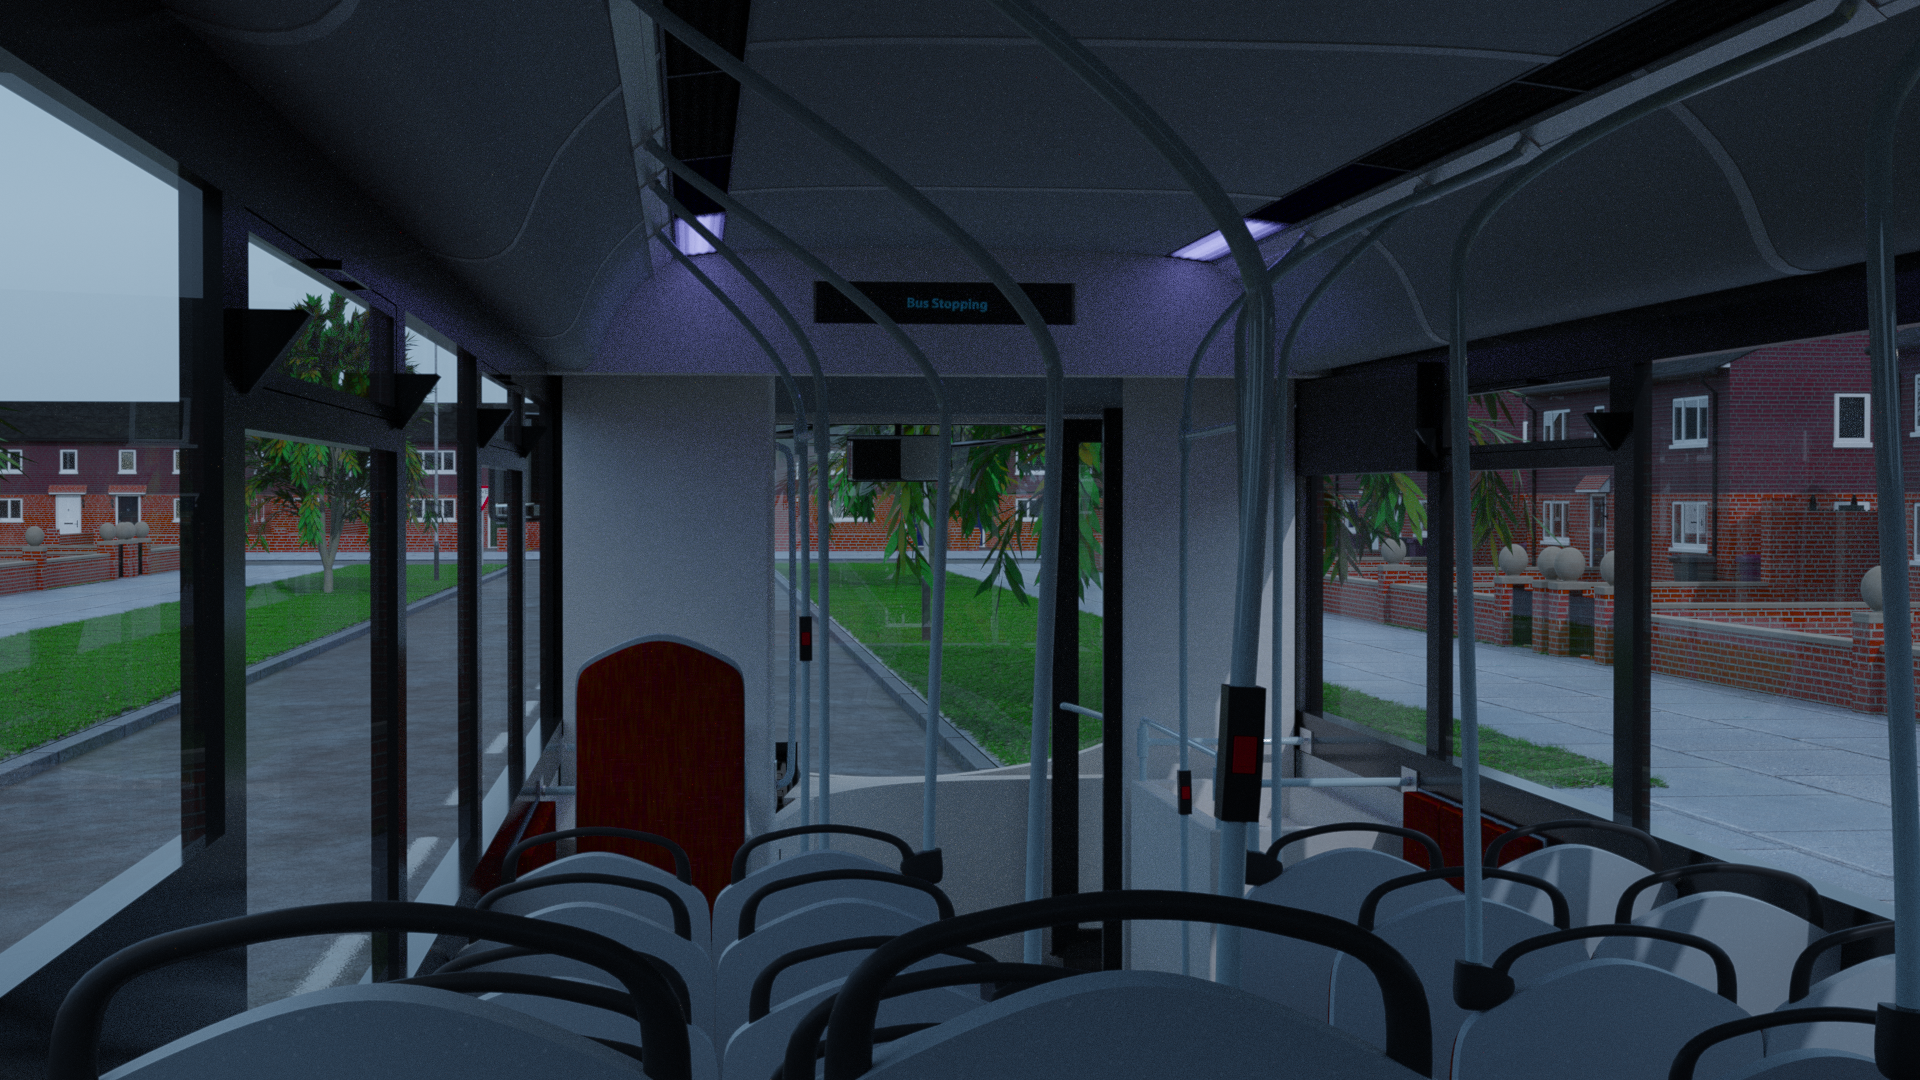 Transit Bus | One Service Door preview image 2